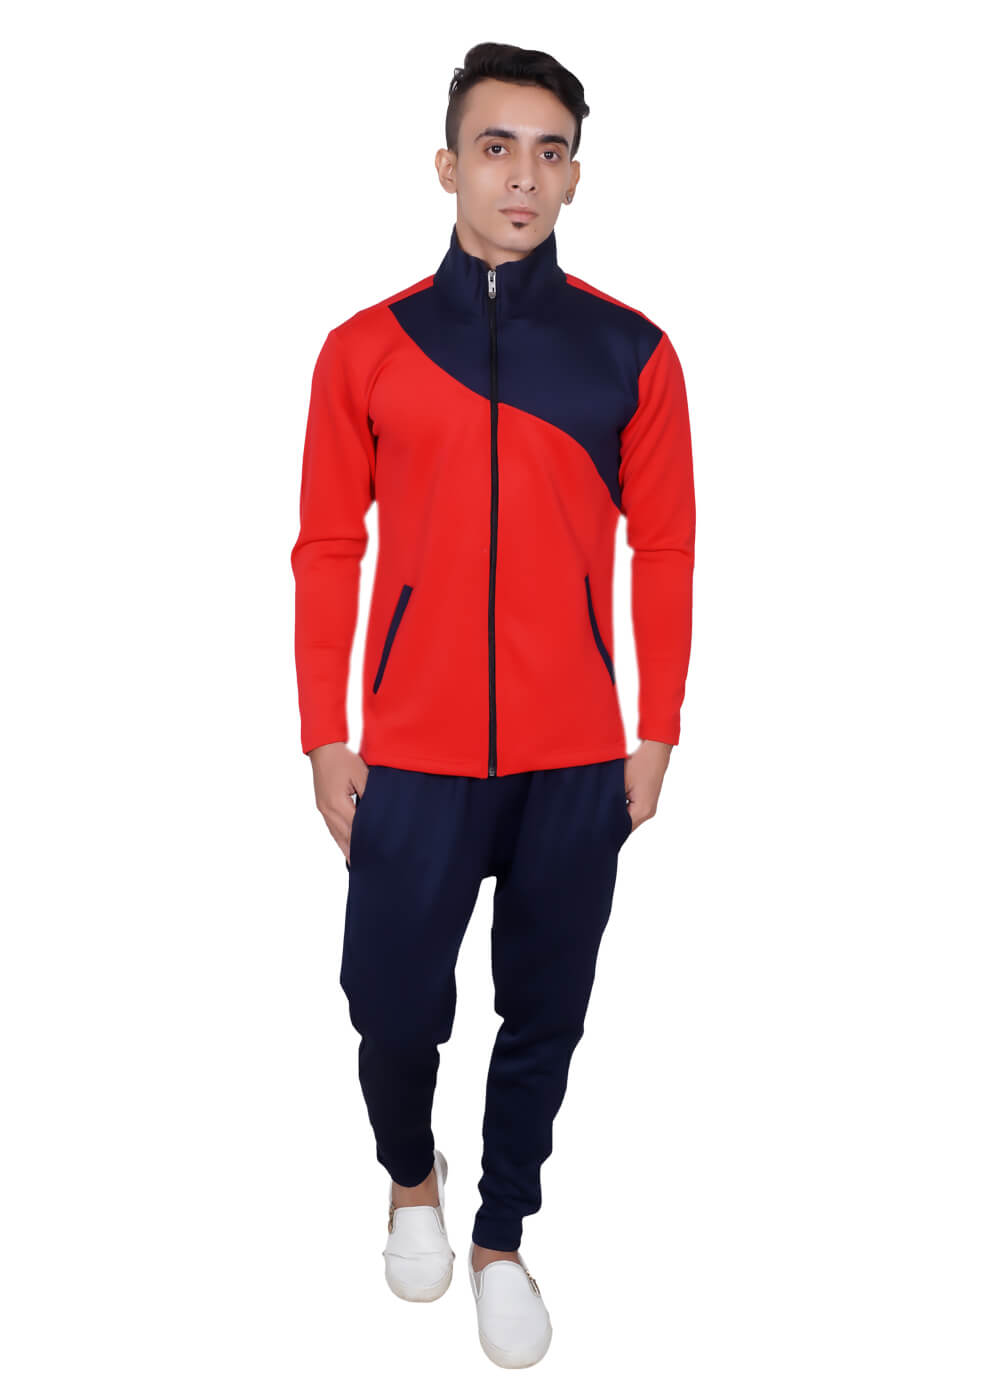 Cheap Tracksuits Manufacturers in Jalandhar in Argentina